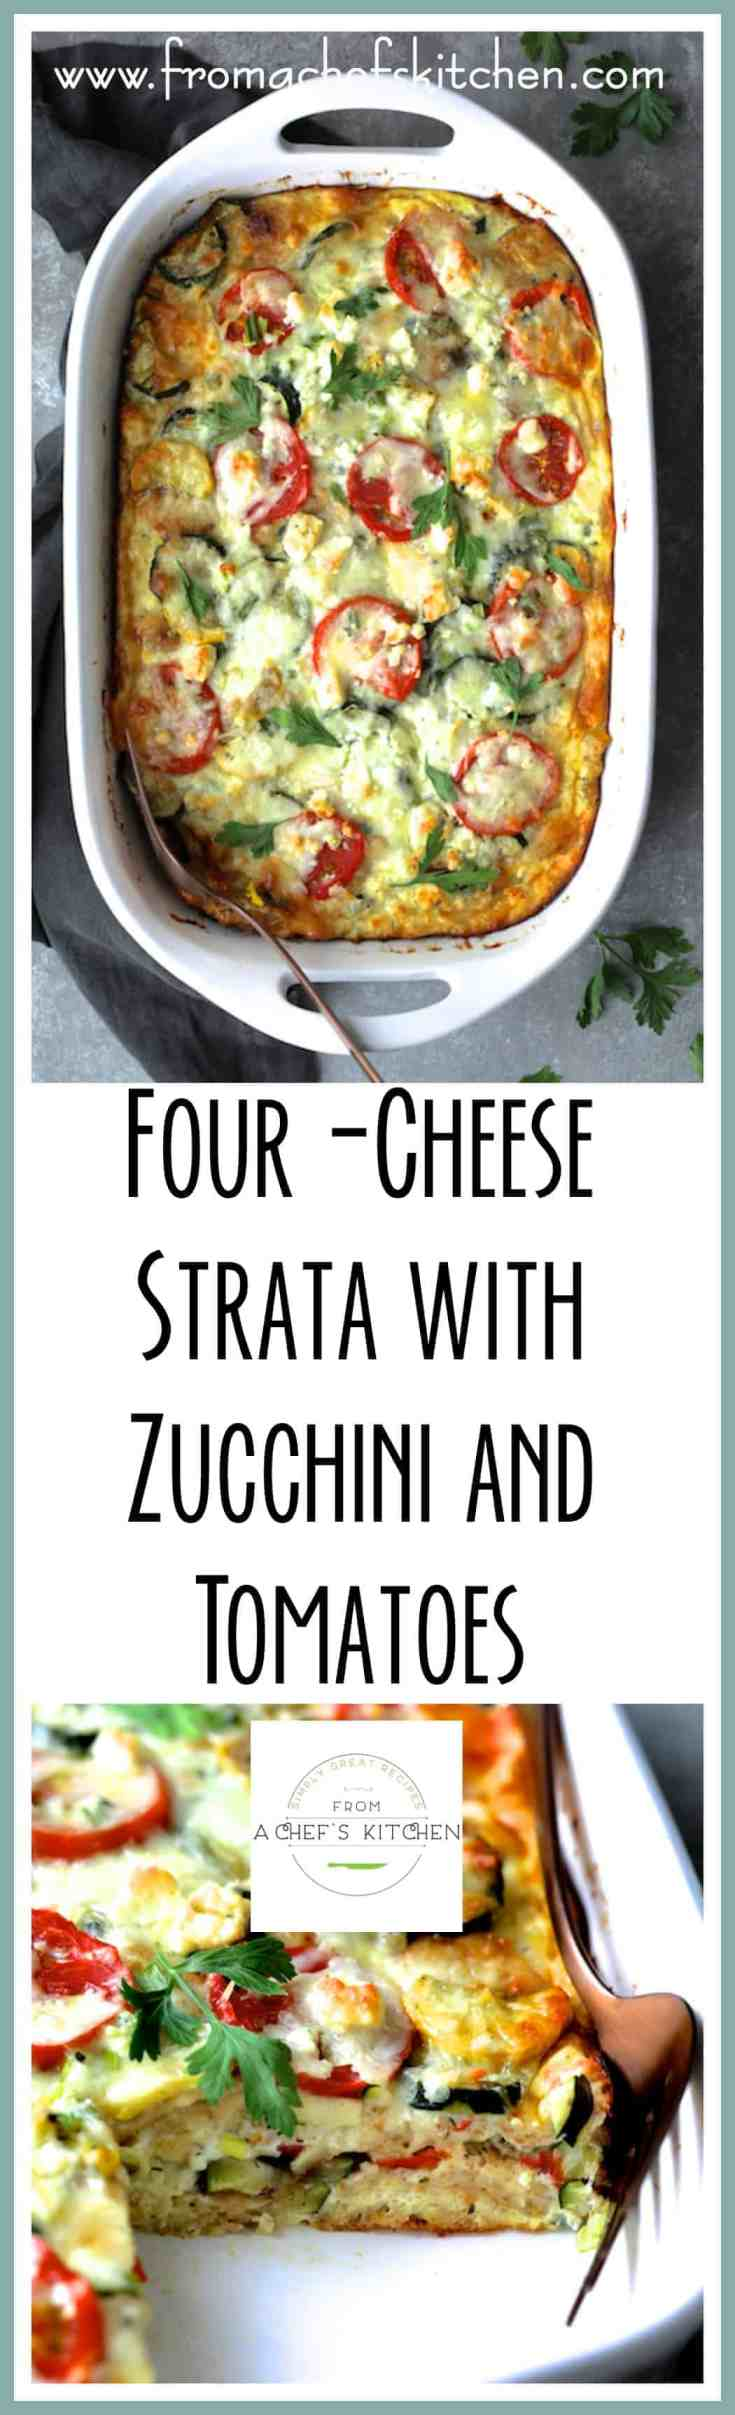 Four Cheese Strata with Zucchini and Tomatoes, with Mozzarella, Cheddar, Parmesan and blue cheese,is a breakfast and brunch game-changer! #strata #zucchini #tomatoes #breakfast #brunch